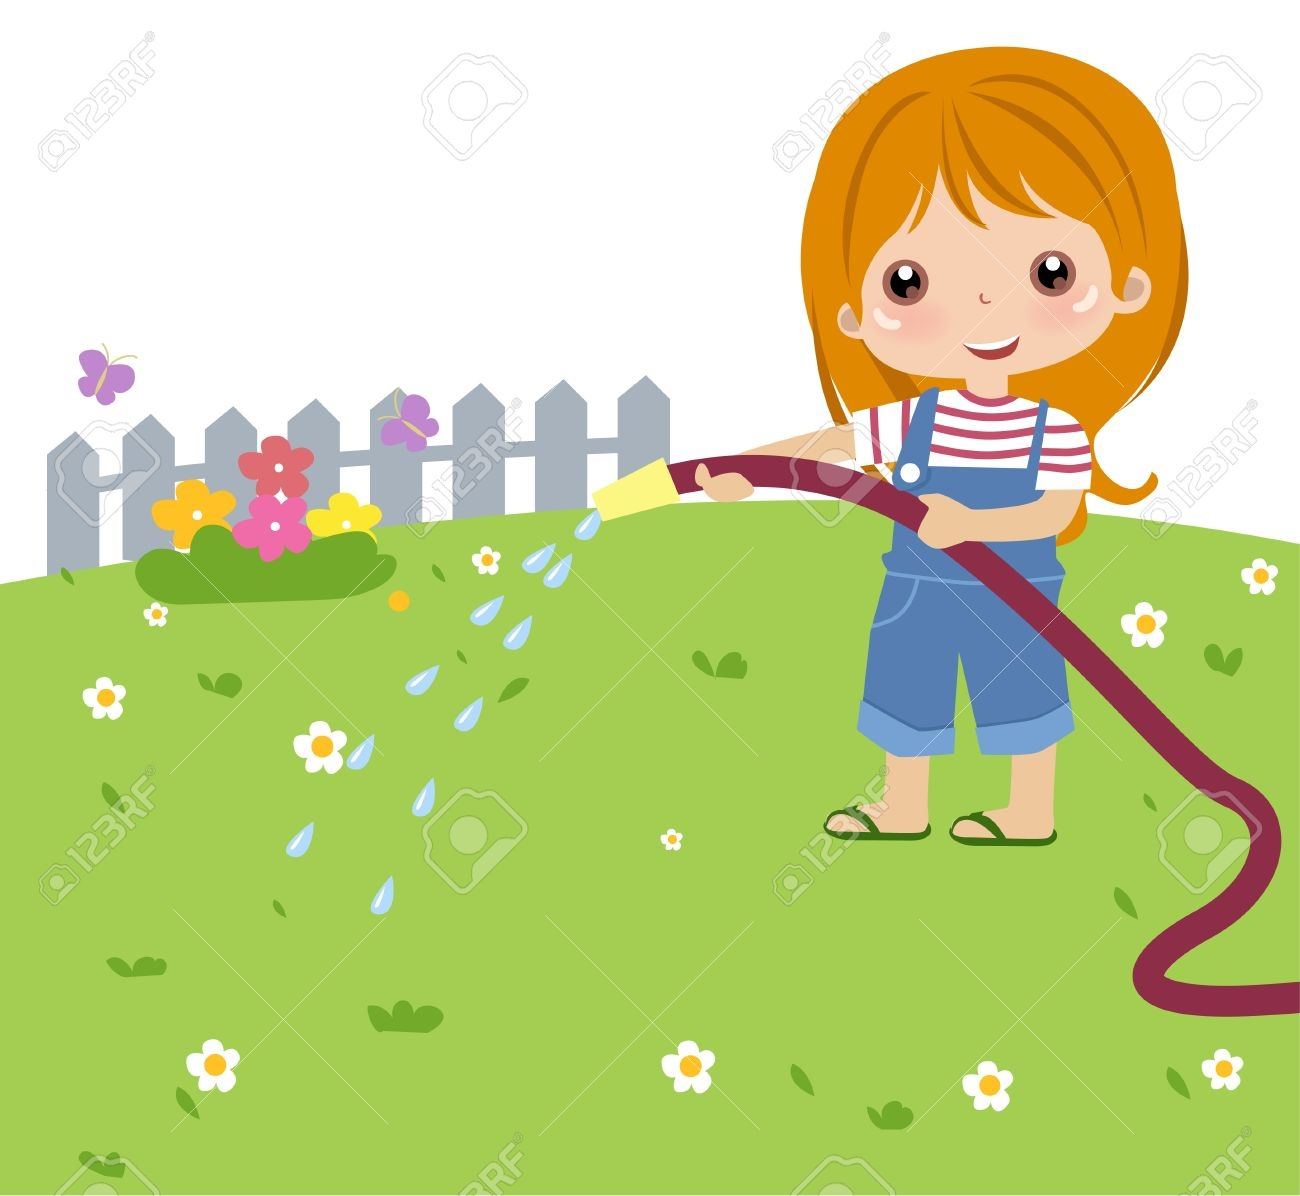 Girl watering plants clipart 10 » Clipart Station.